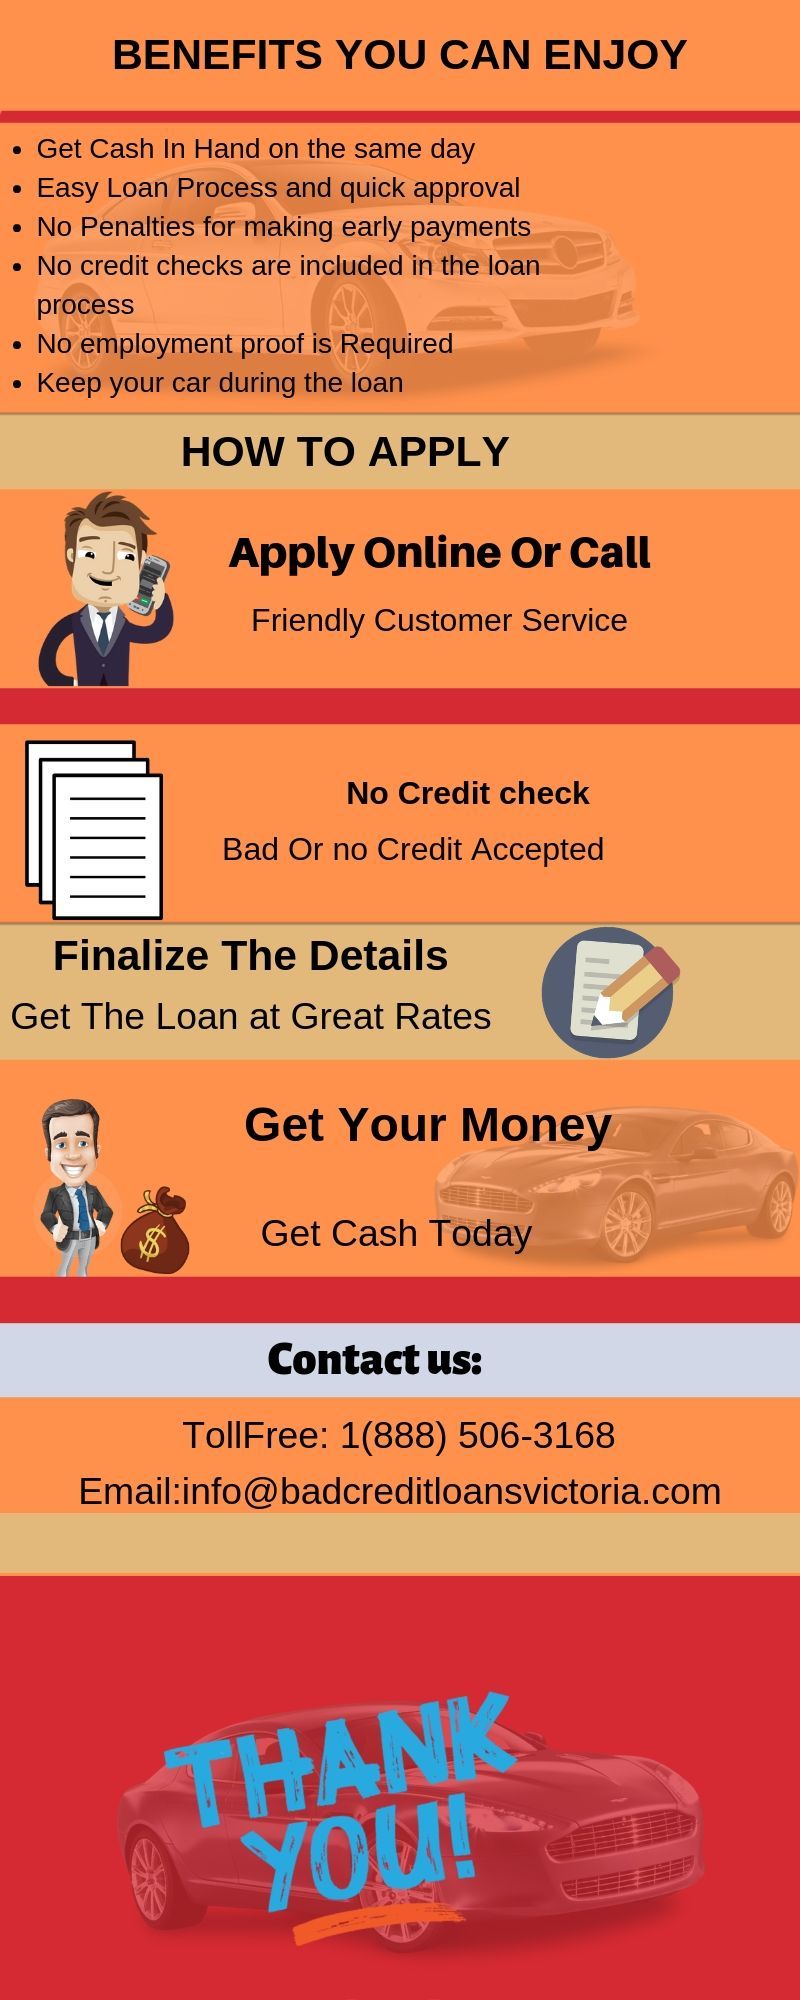 Apply For Car Title Loan In Central Saanich And Get Cash Fast By Bad Credit Loans Victoria Loans For Bad Credit Bad Credit Car Loan Bad Credit